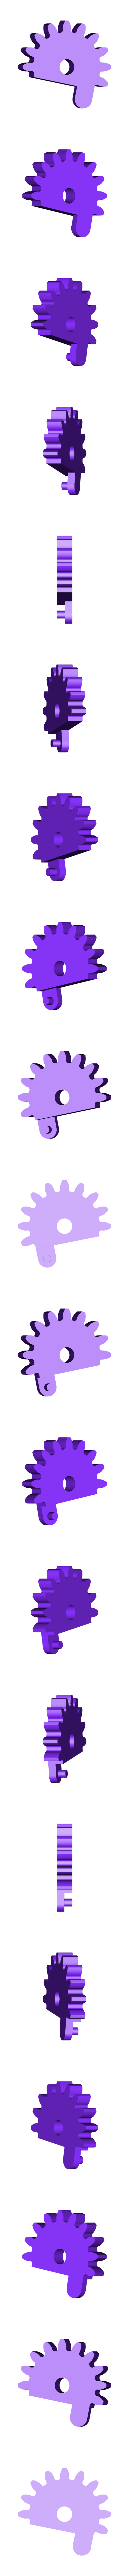 Spur_Gear_R.stl Download free STL file Mechanical Quick Grab/Release Phone Stand • 3D printable object, arron_mollet22